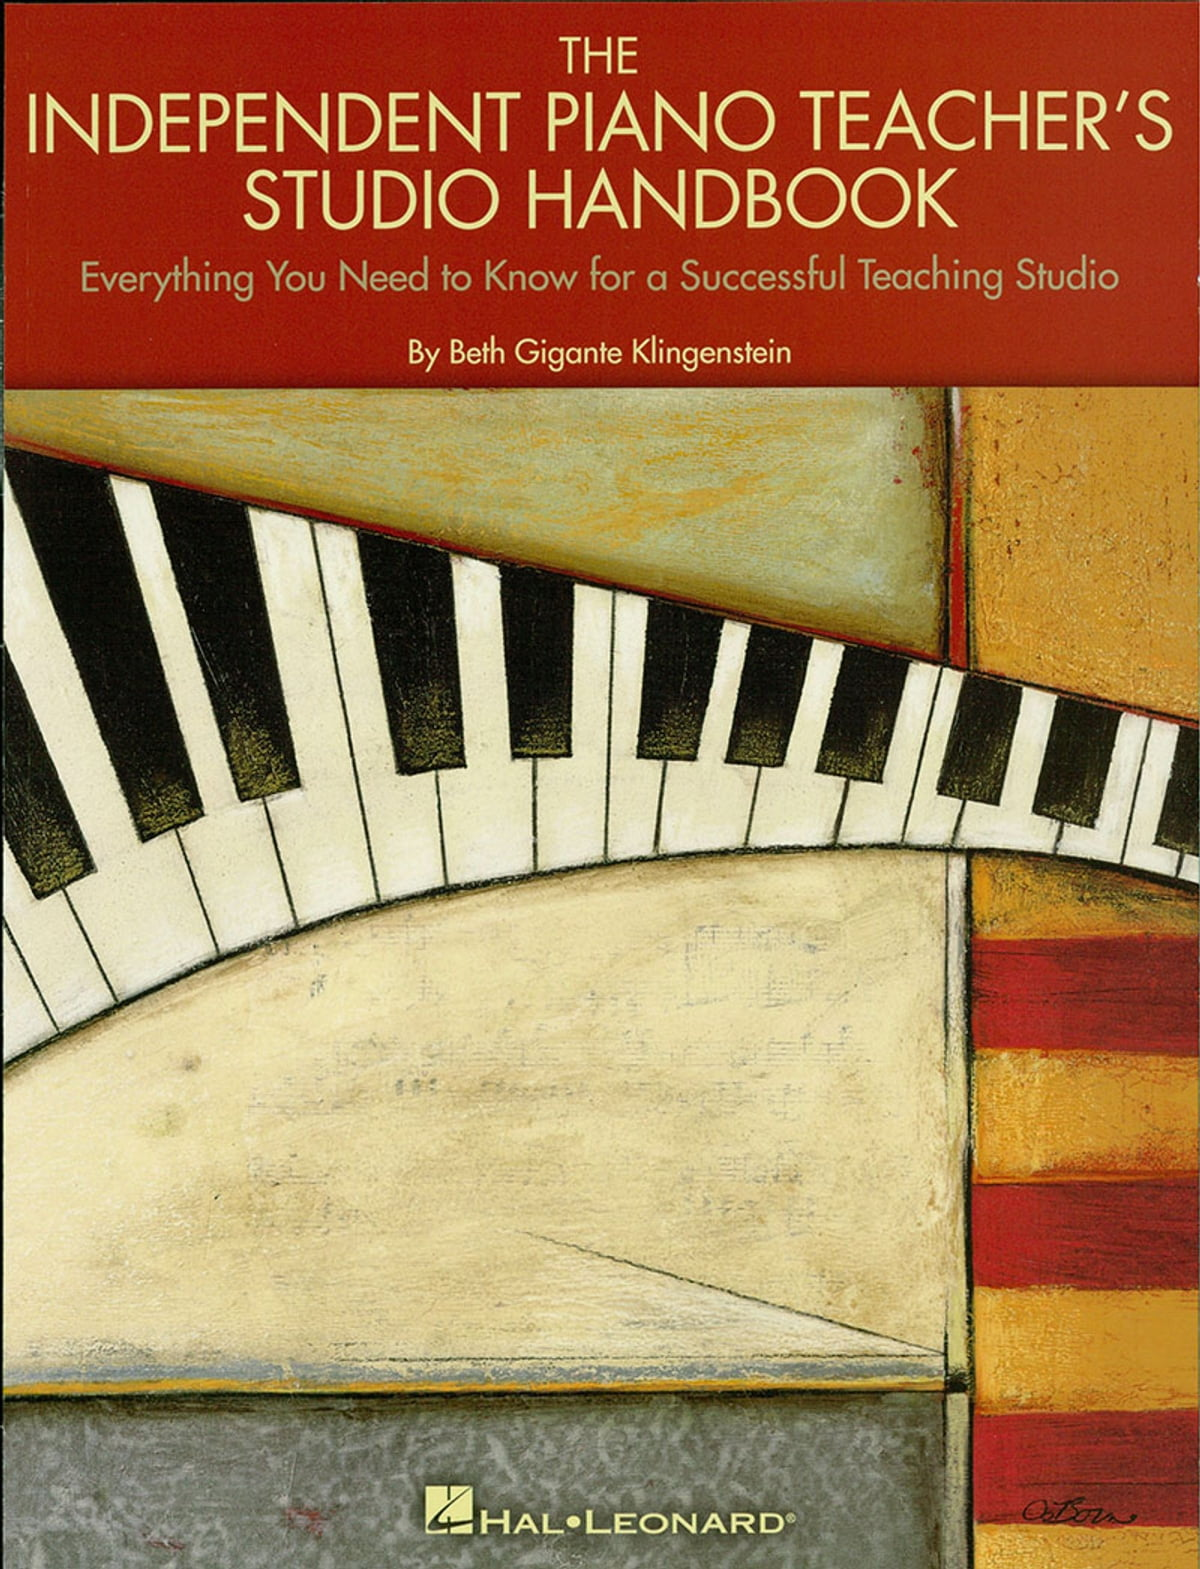 The Independent Piano Teacher's Studio Handbook Ebook By Beth Gigante  Klingenstein  9781476834139  Kobo